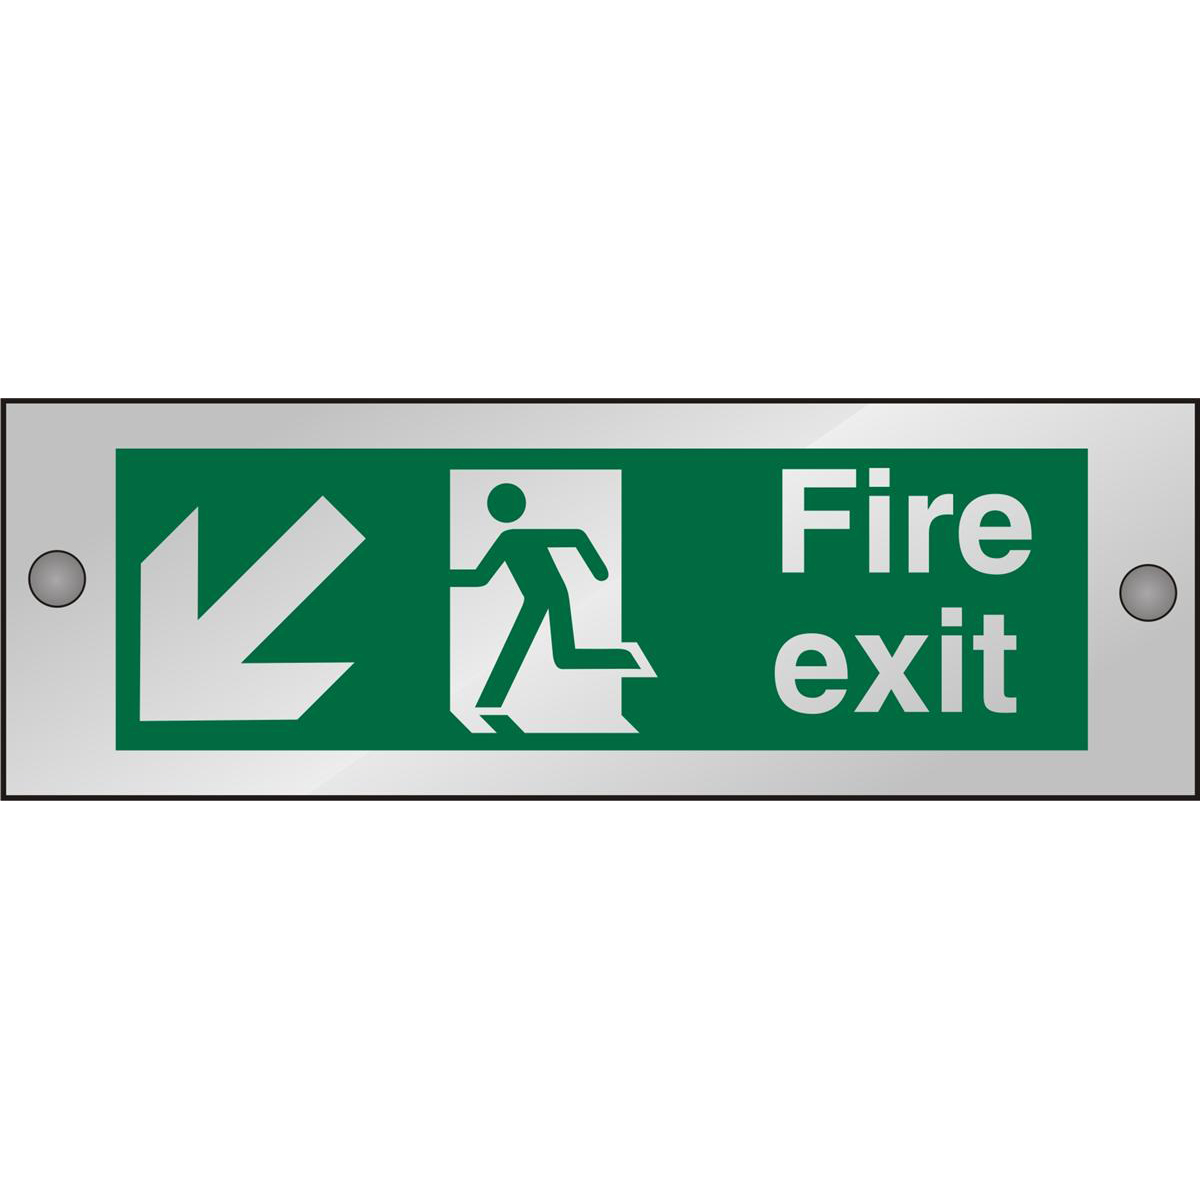 Clear Sign 300x100 5mm FireExit Man Running Left&Arrow blhc Ref CACSP122300x100 Up to 10 Day Leadtime